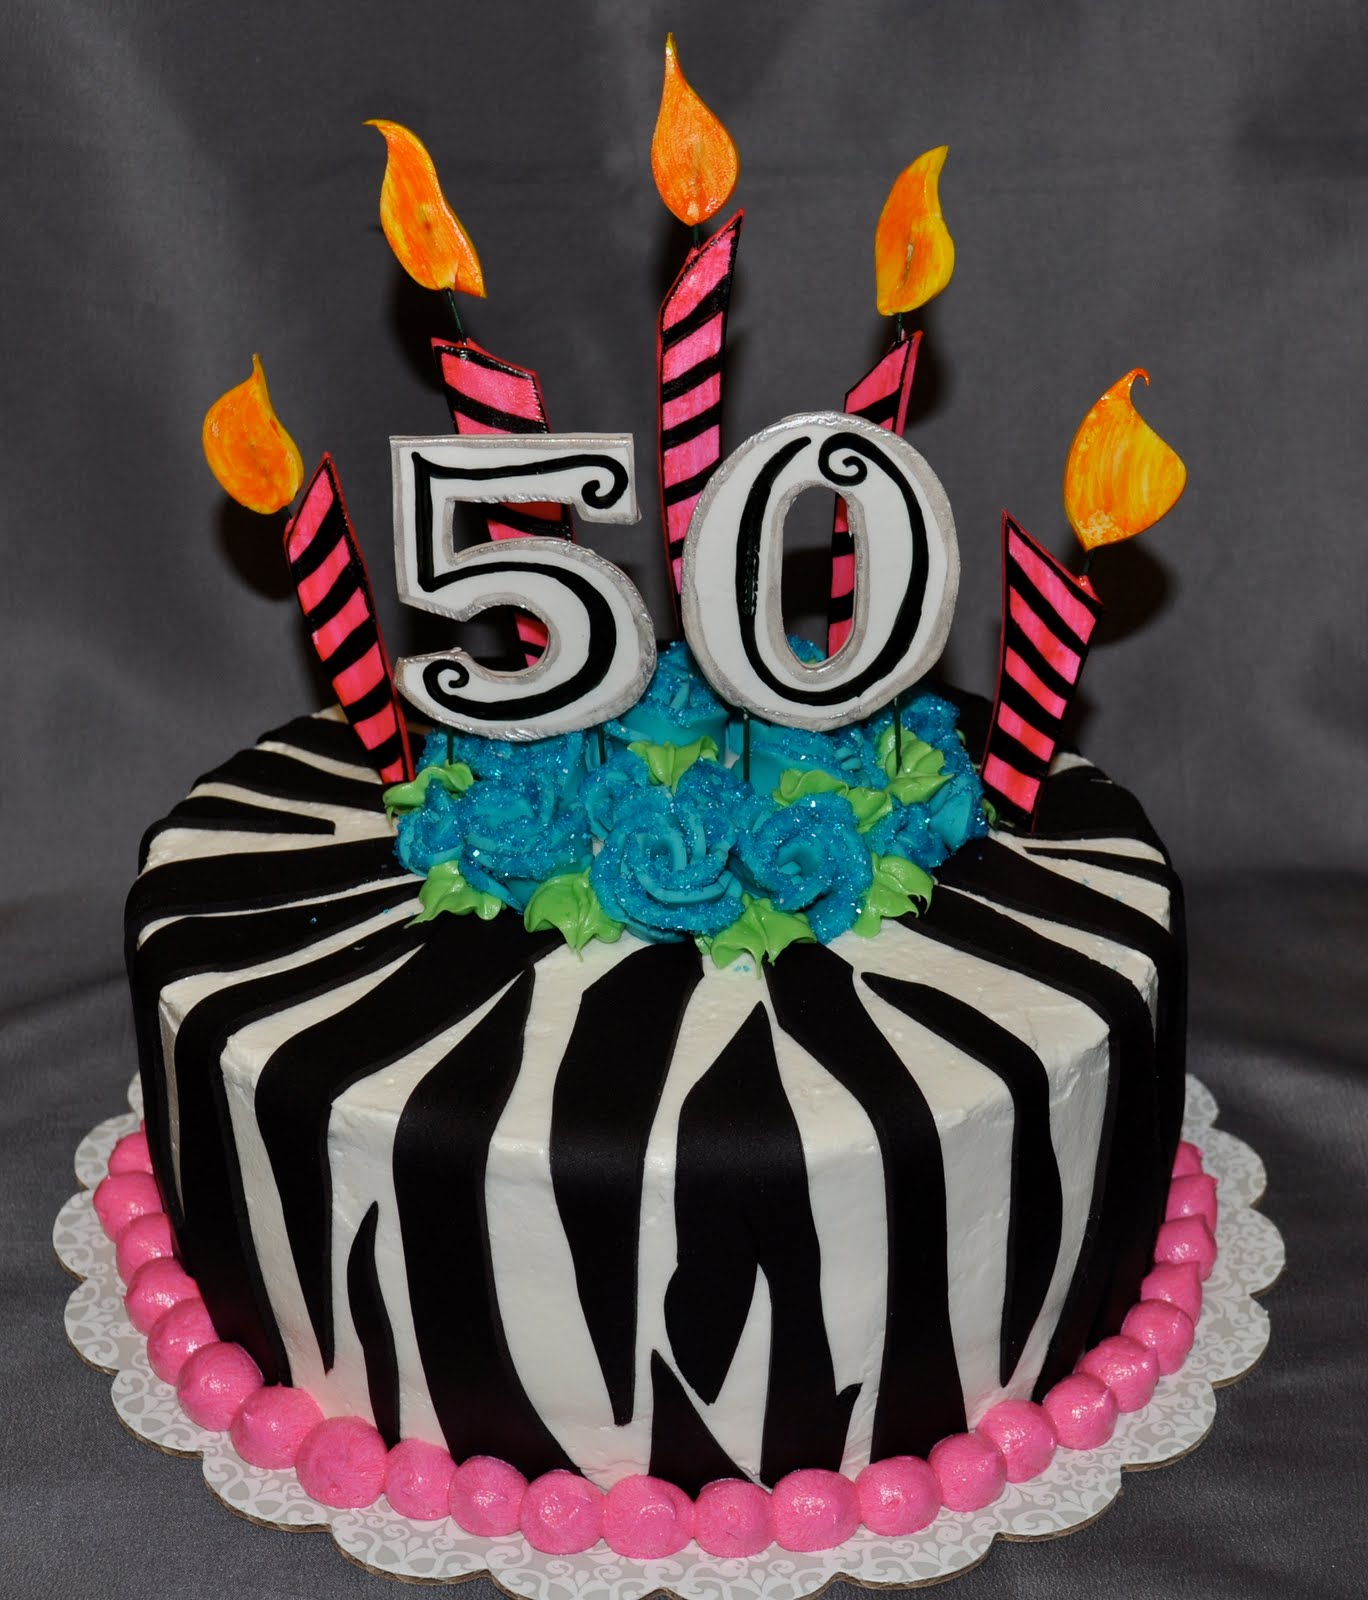 Homemade 50th Birthday Cake